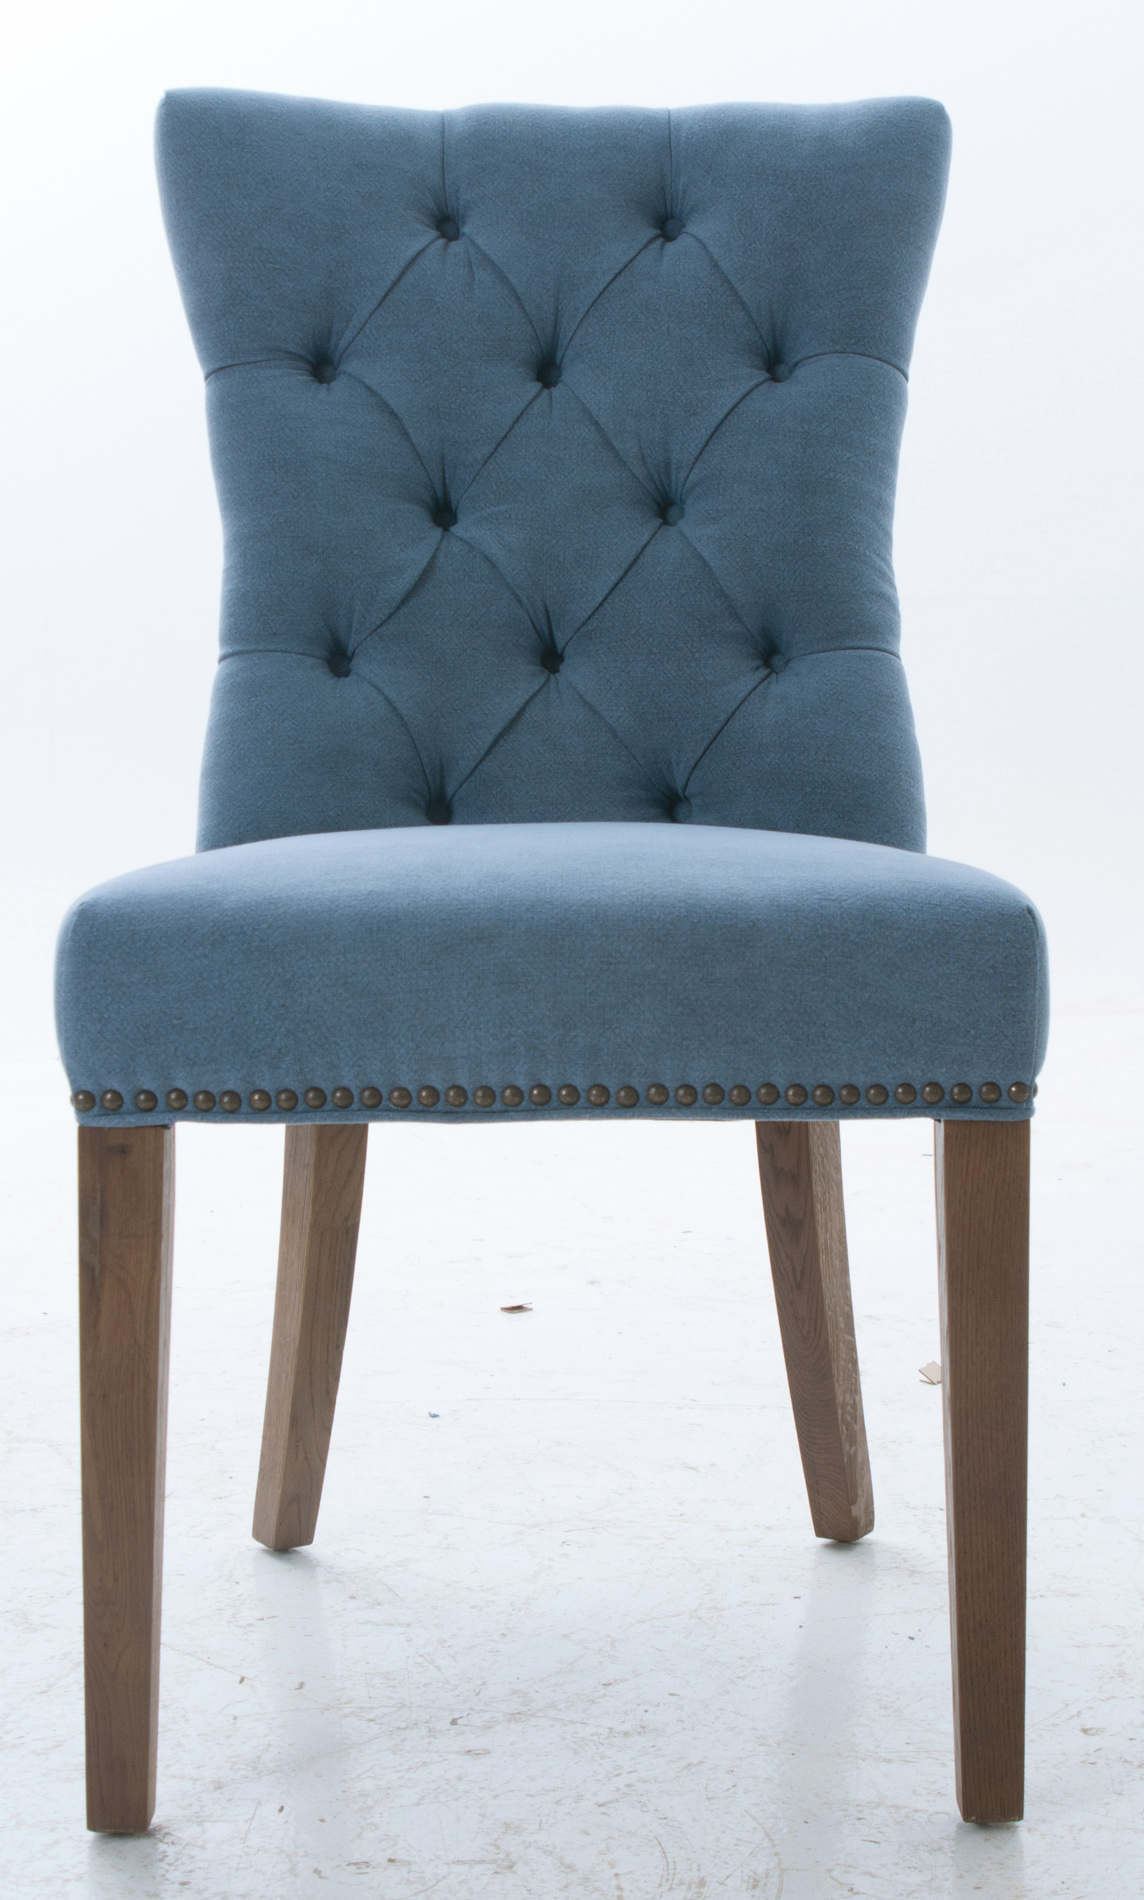 COmfortable Blue Upholstered Dining Room Chair